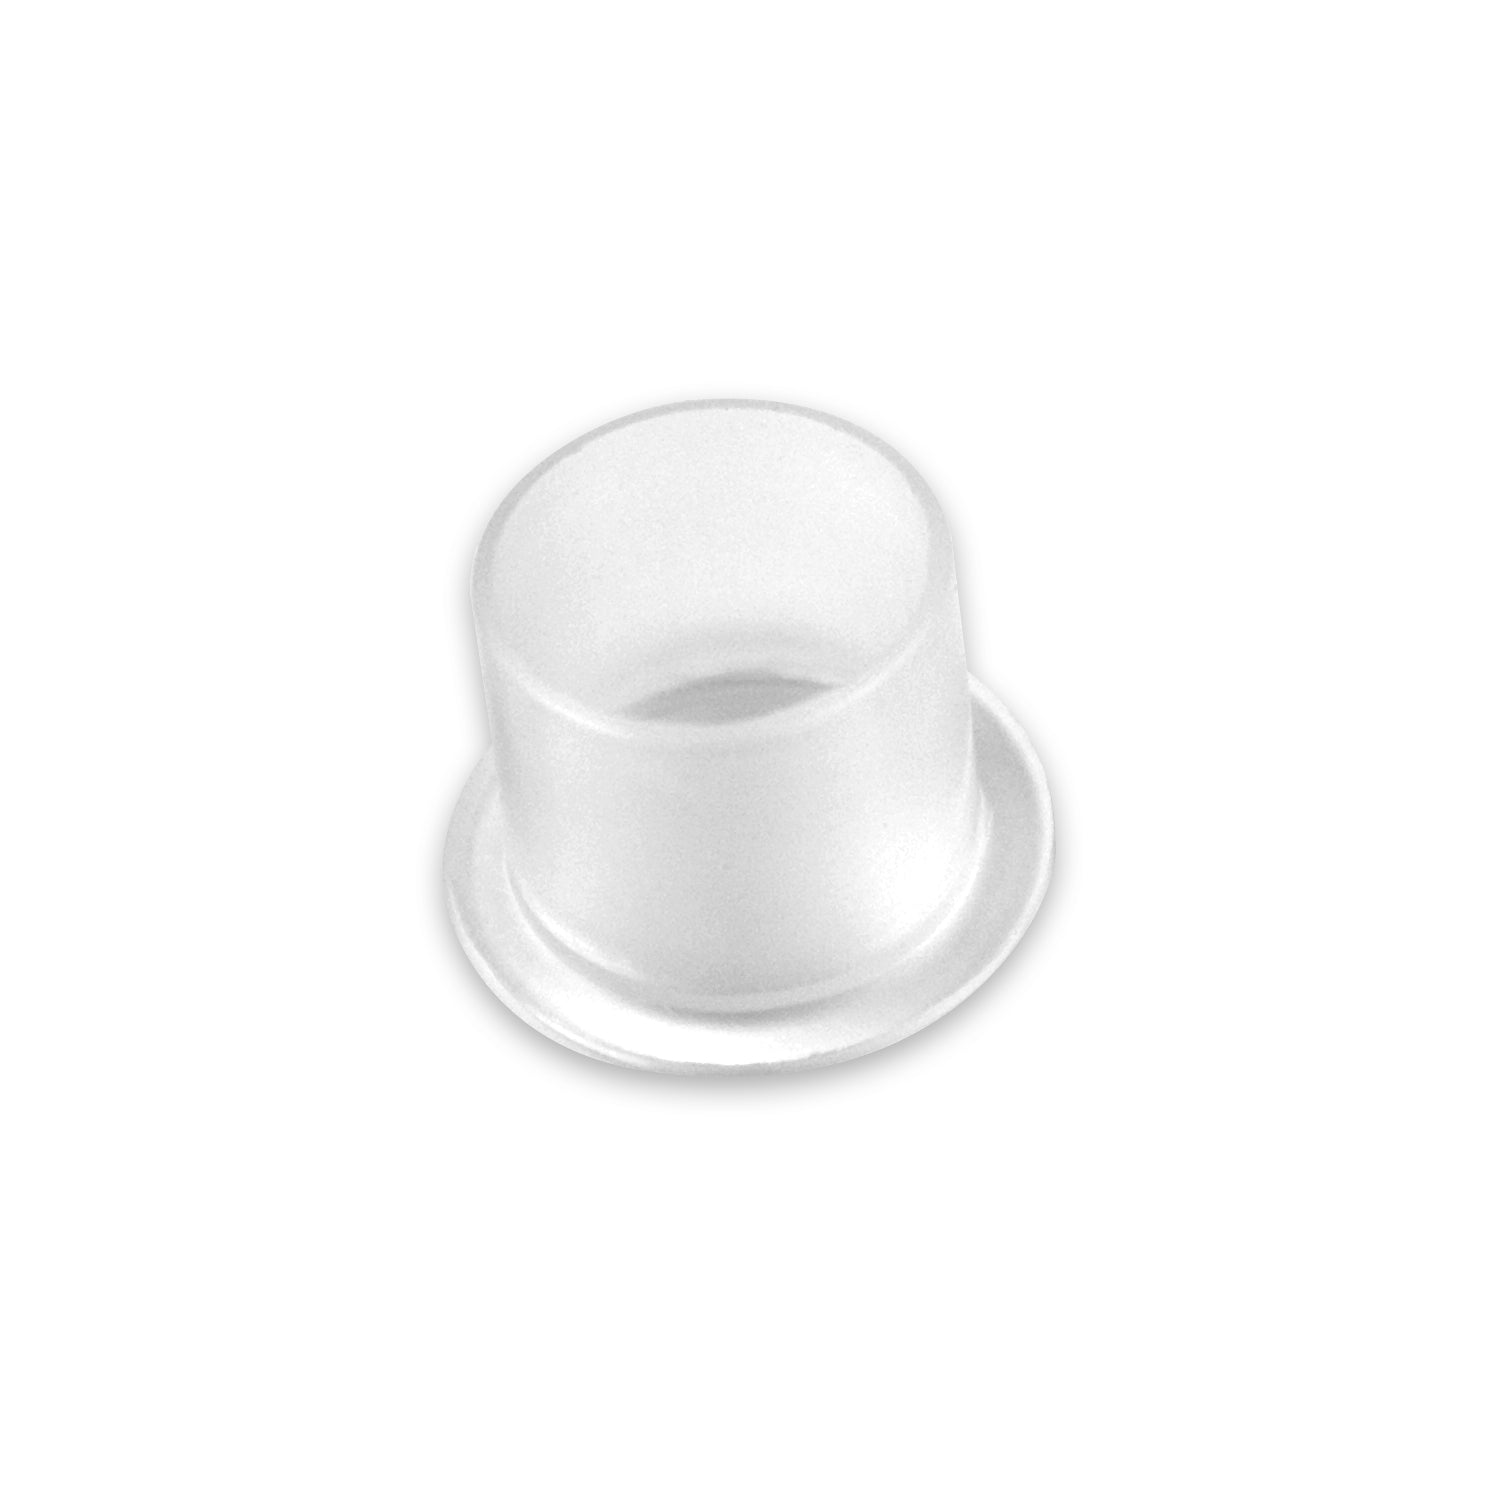 Ink Cups - Flat Bottom, 14 mm - Medium, 1000 Count